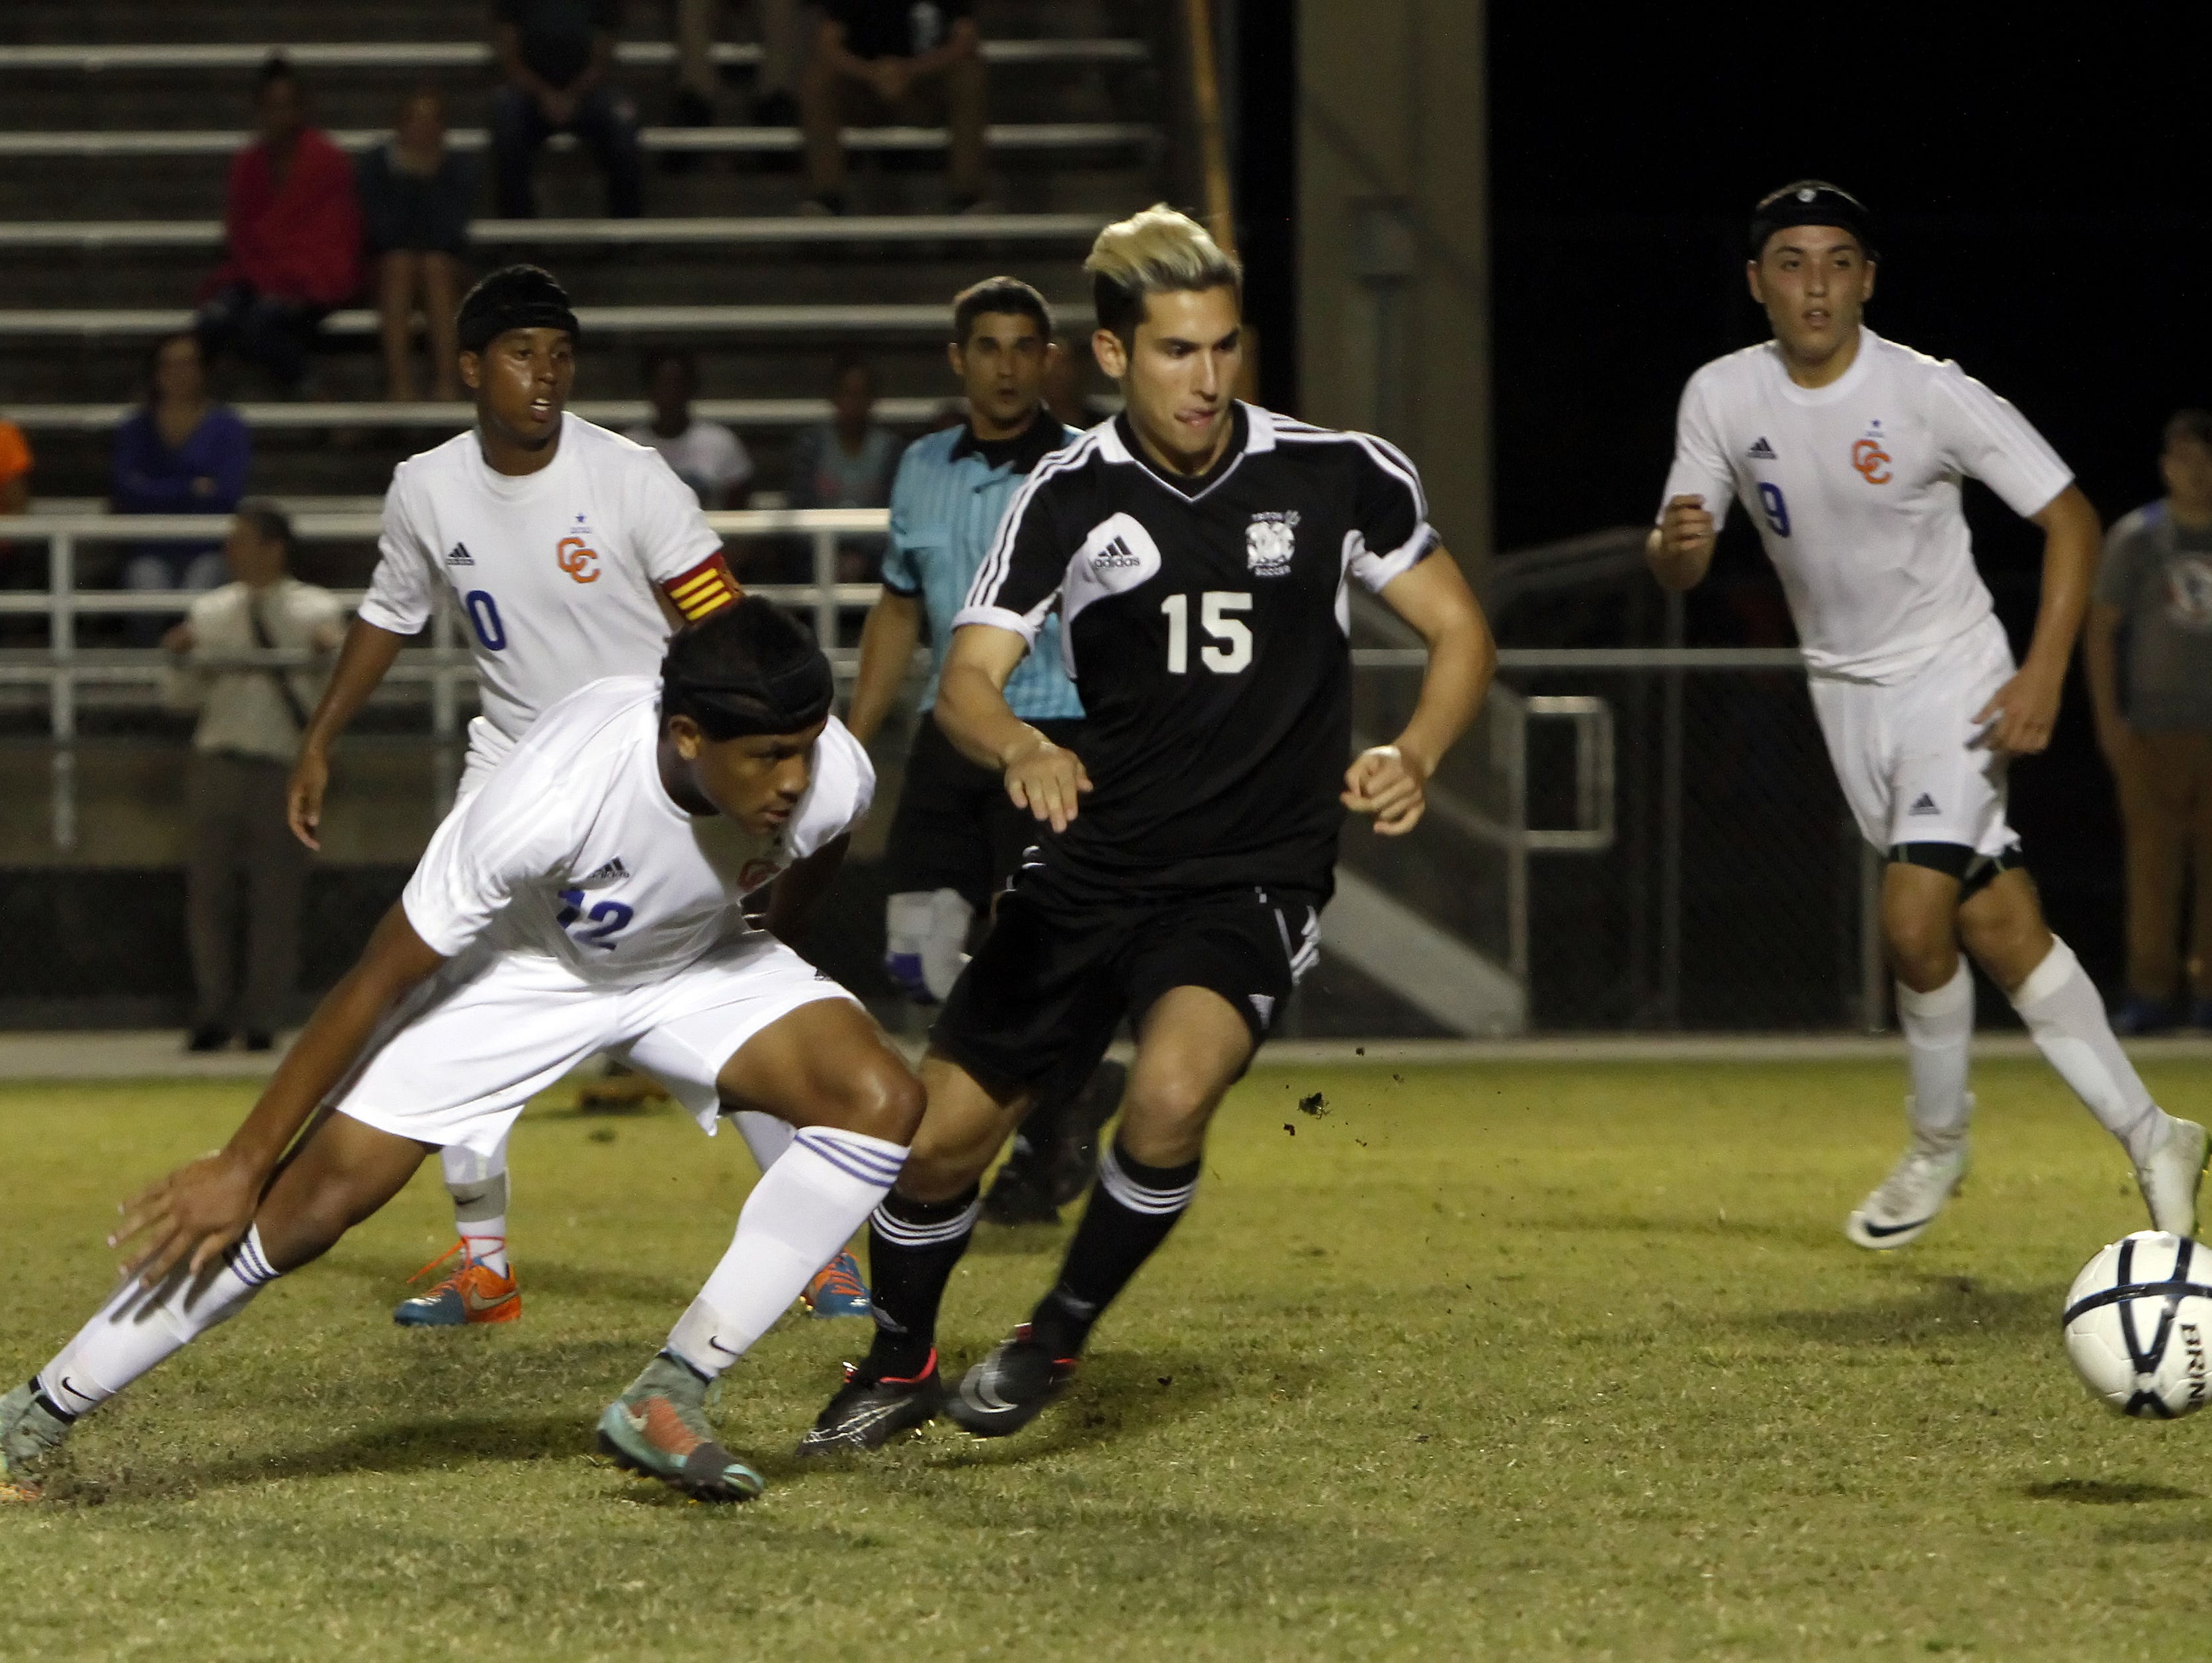 Should local soccer players be forced to choose between playing club and high school soccer? One local club coach posed the dilemma for his players.